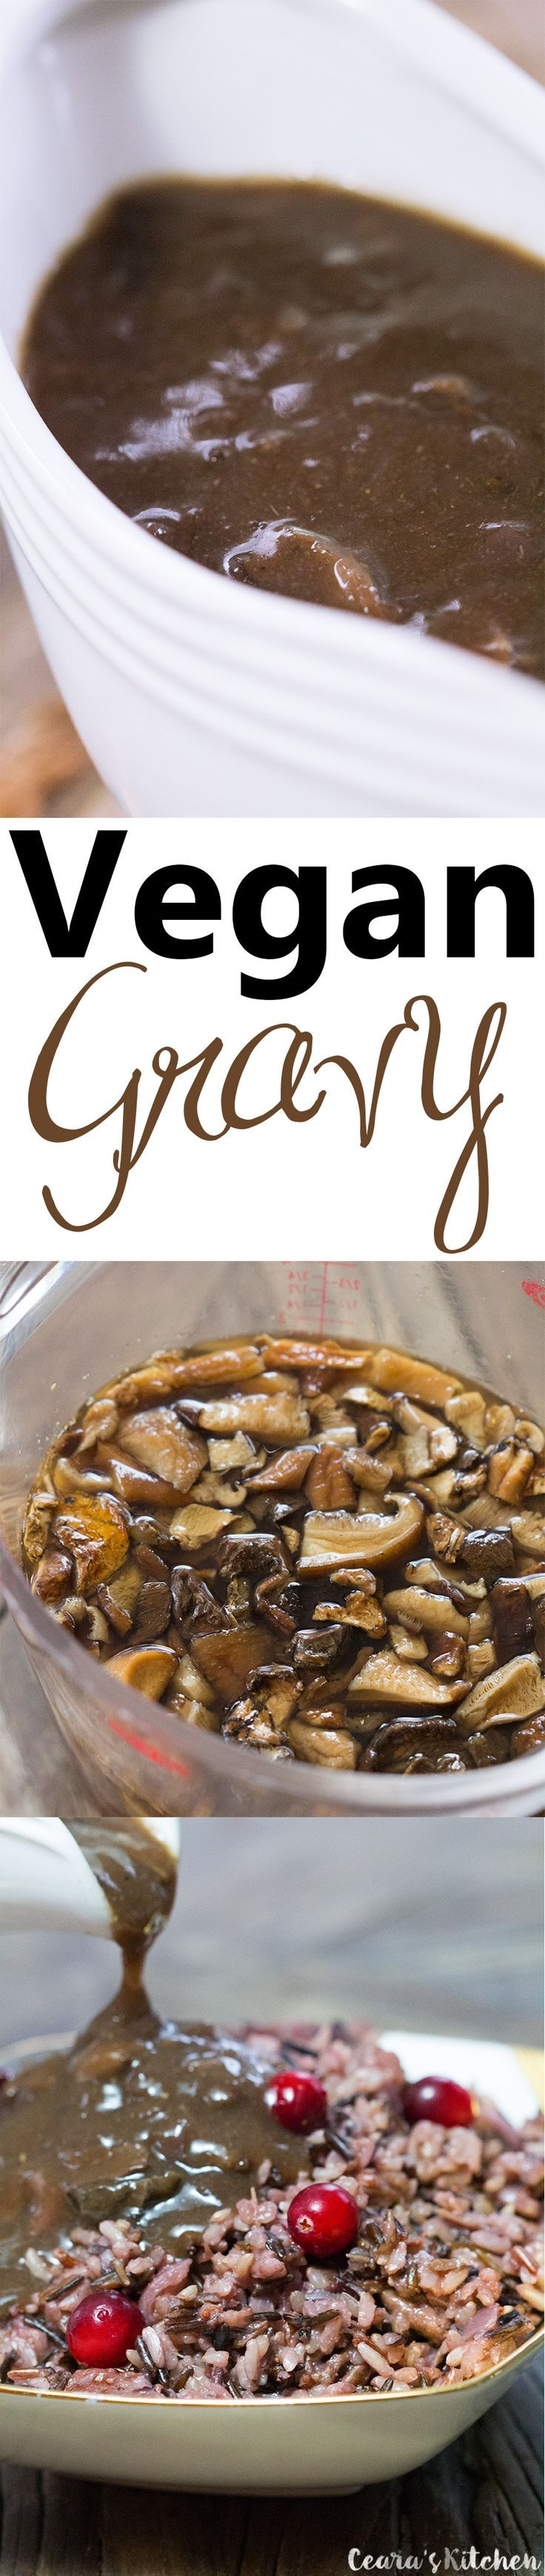 Simple and rich Easy Vegan Gravy. This gravy is so incredibly rich, flavorful and perfect to drizzle over all your favorite holidays sides!